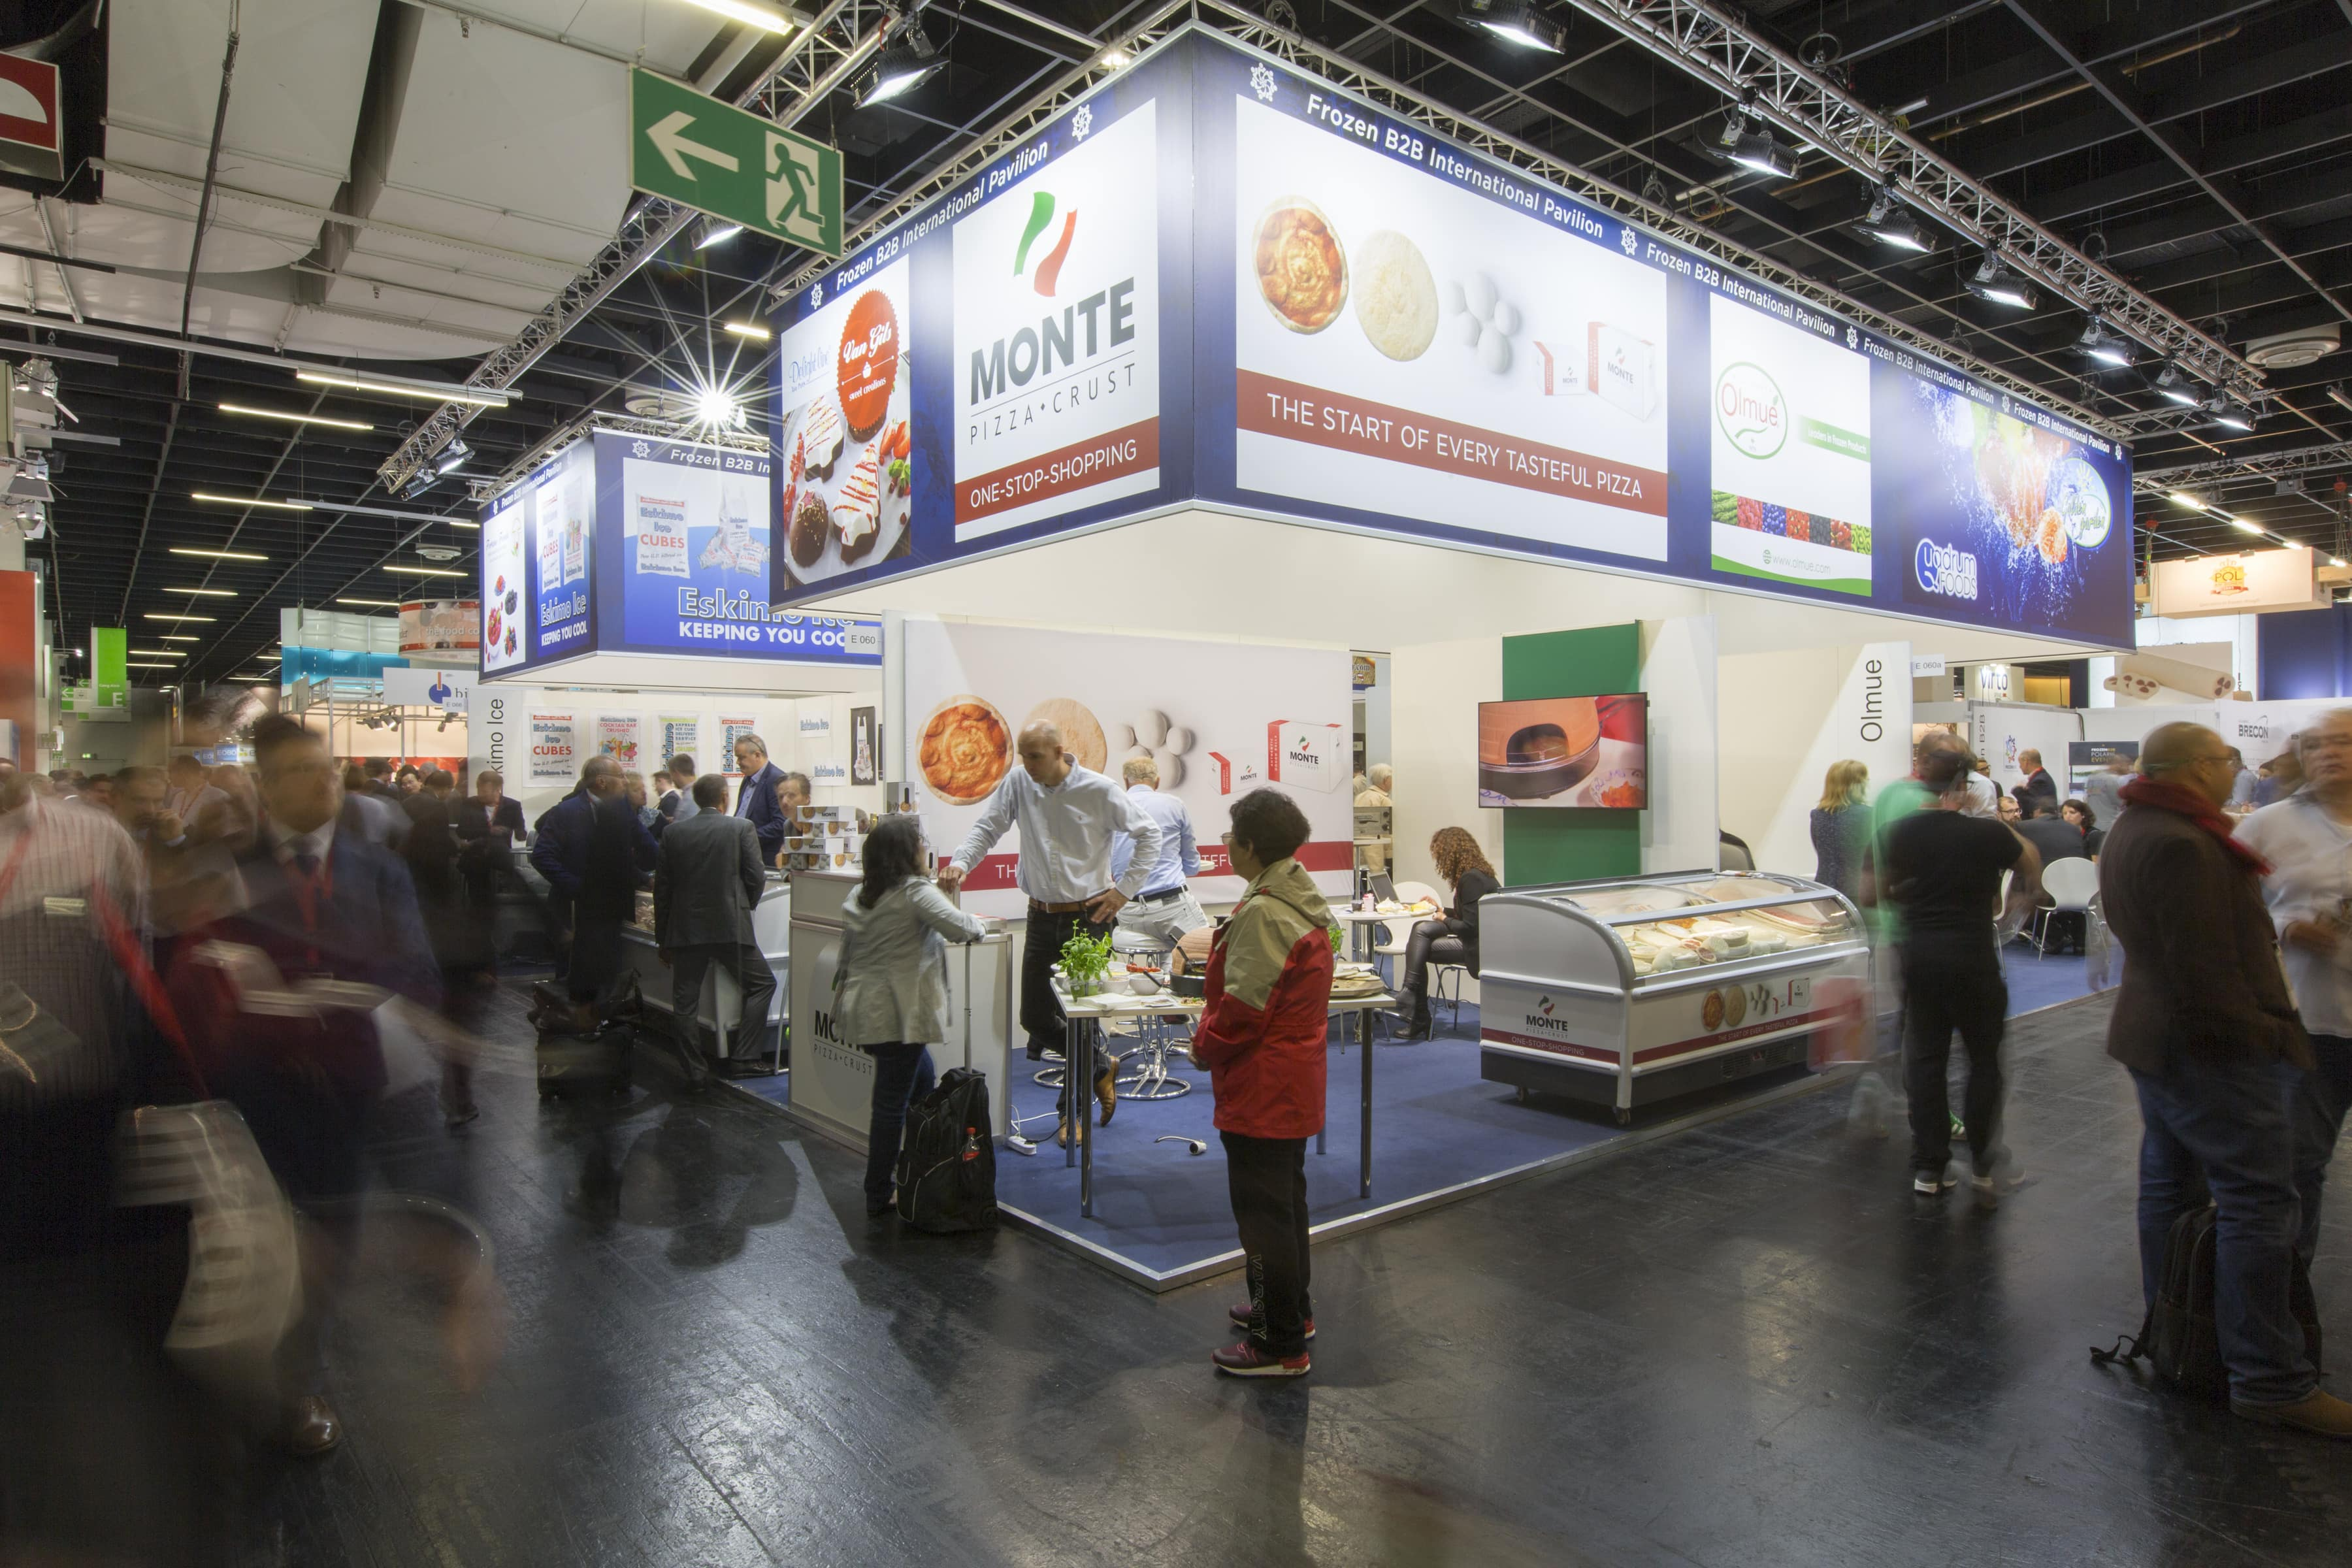 Impressive group stand: bright, inviting and with large long-distance effect.